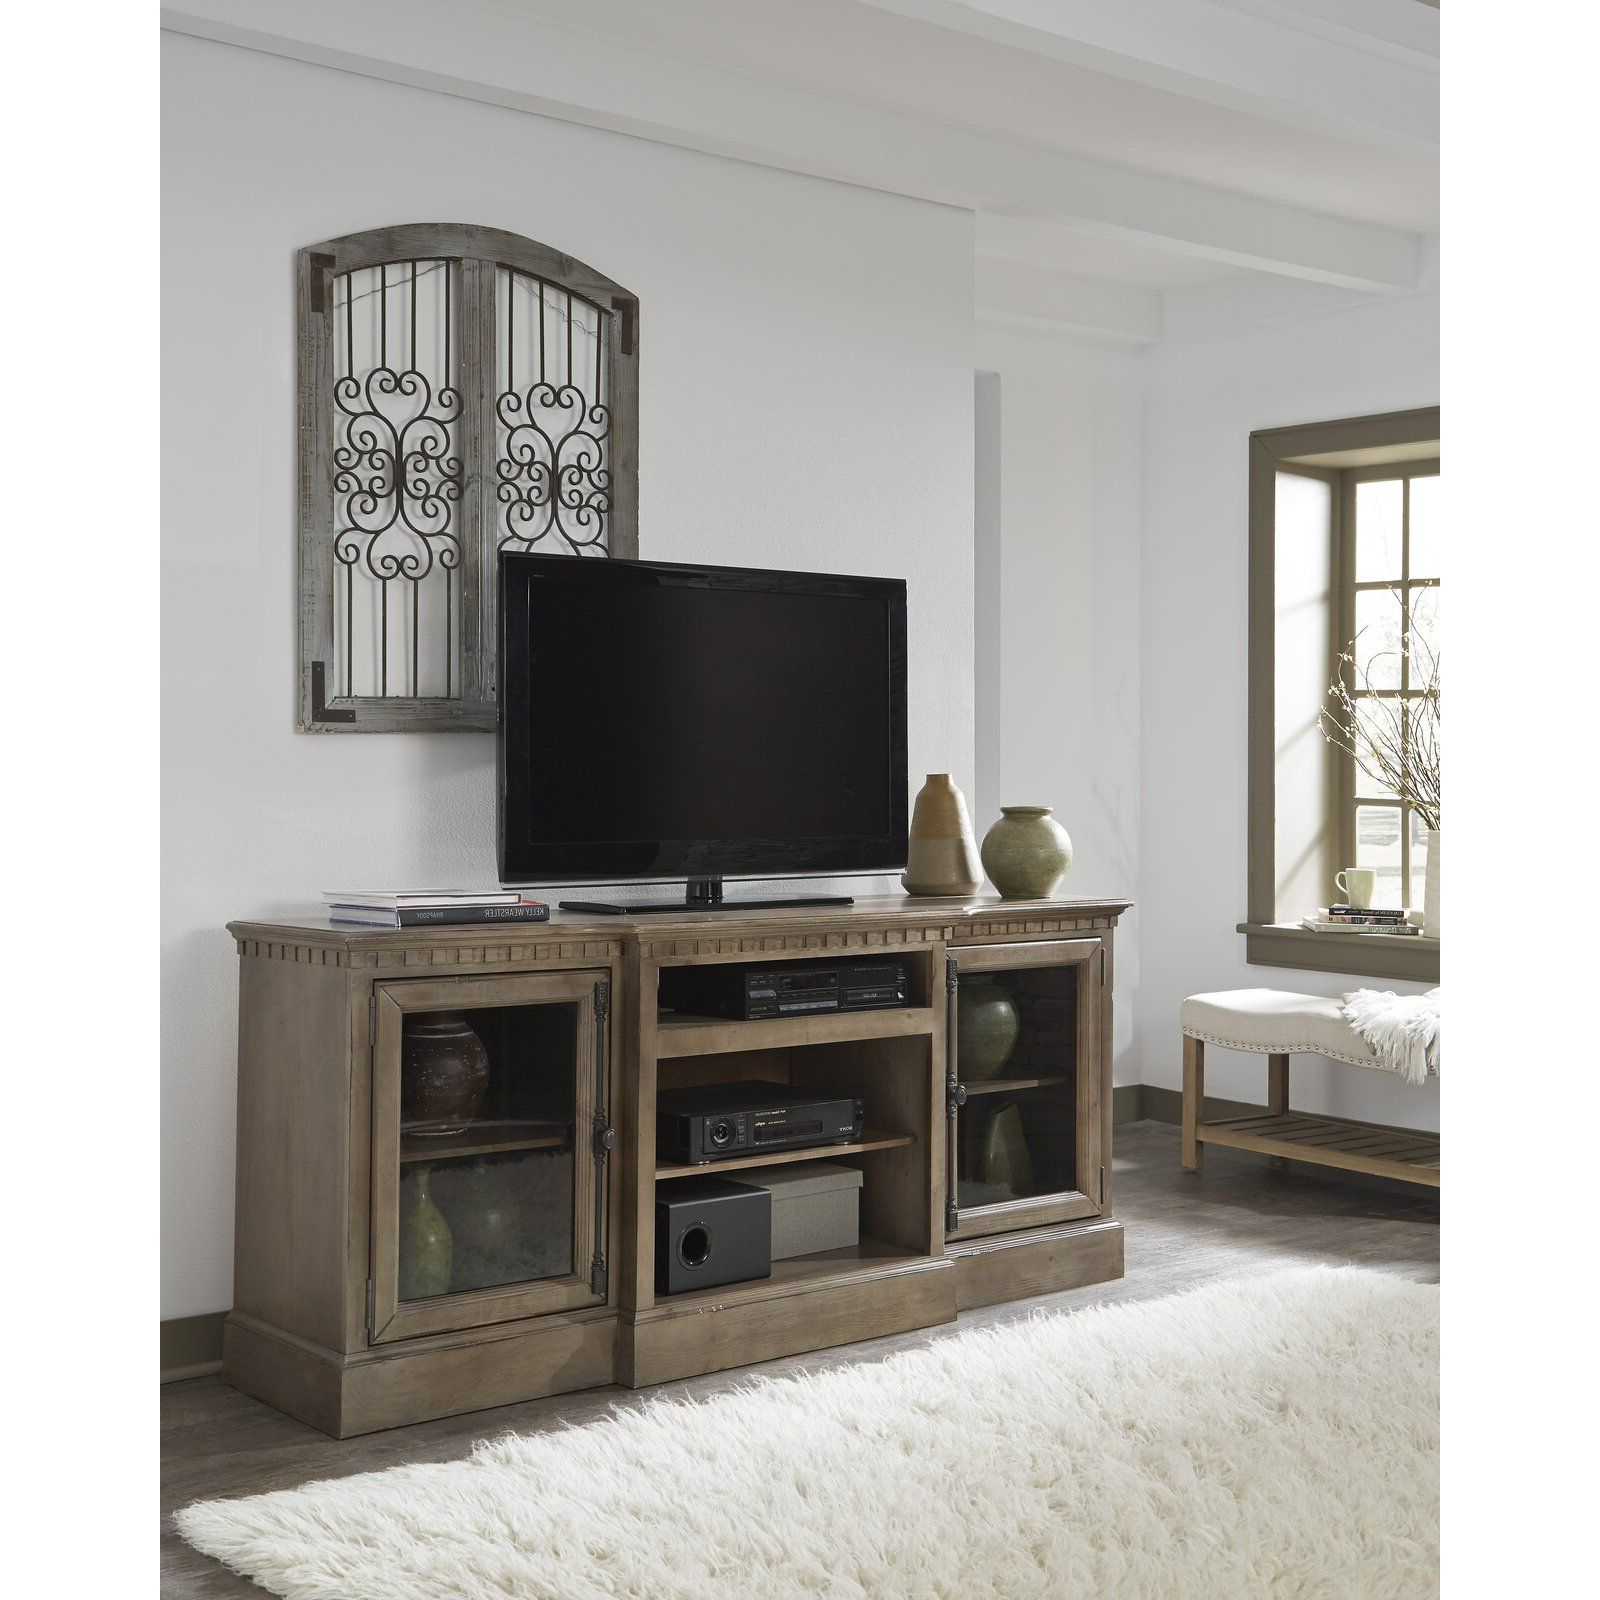 """Griffing Solid Wood Tv Stands For Tvs Up To 85"""" With Trendy Greyleigh Marbleton Tv Stand For Tvs Up To 70"""" & Reviews (View 16 of 25)"""